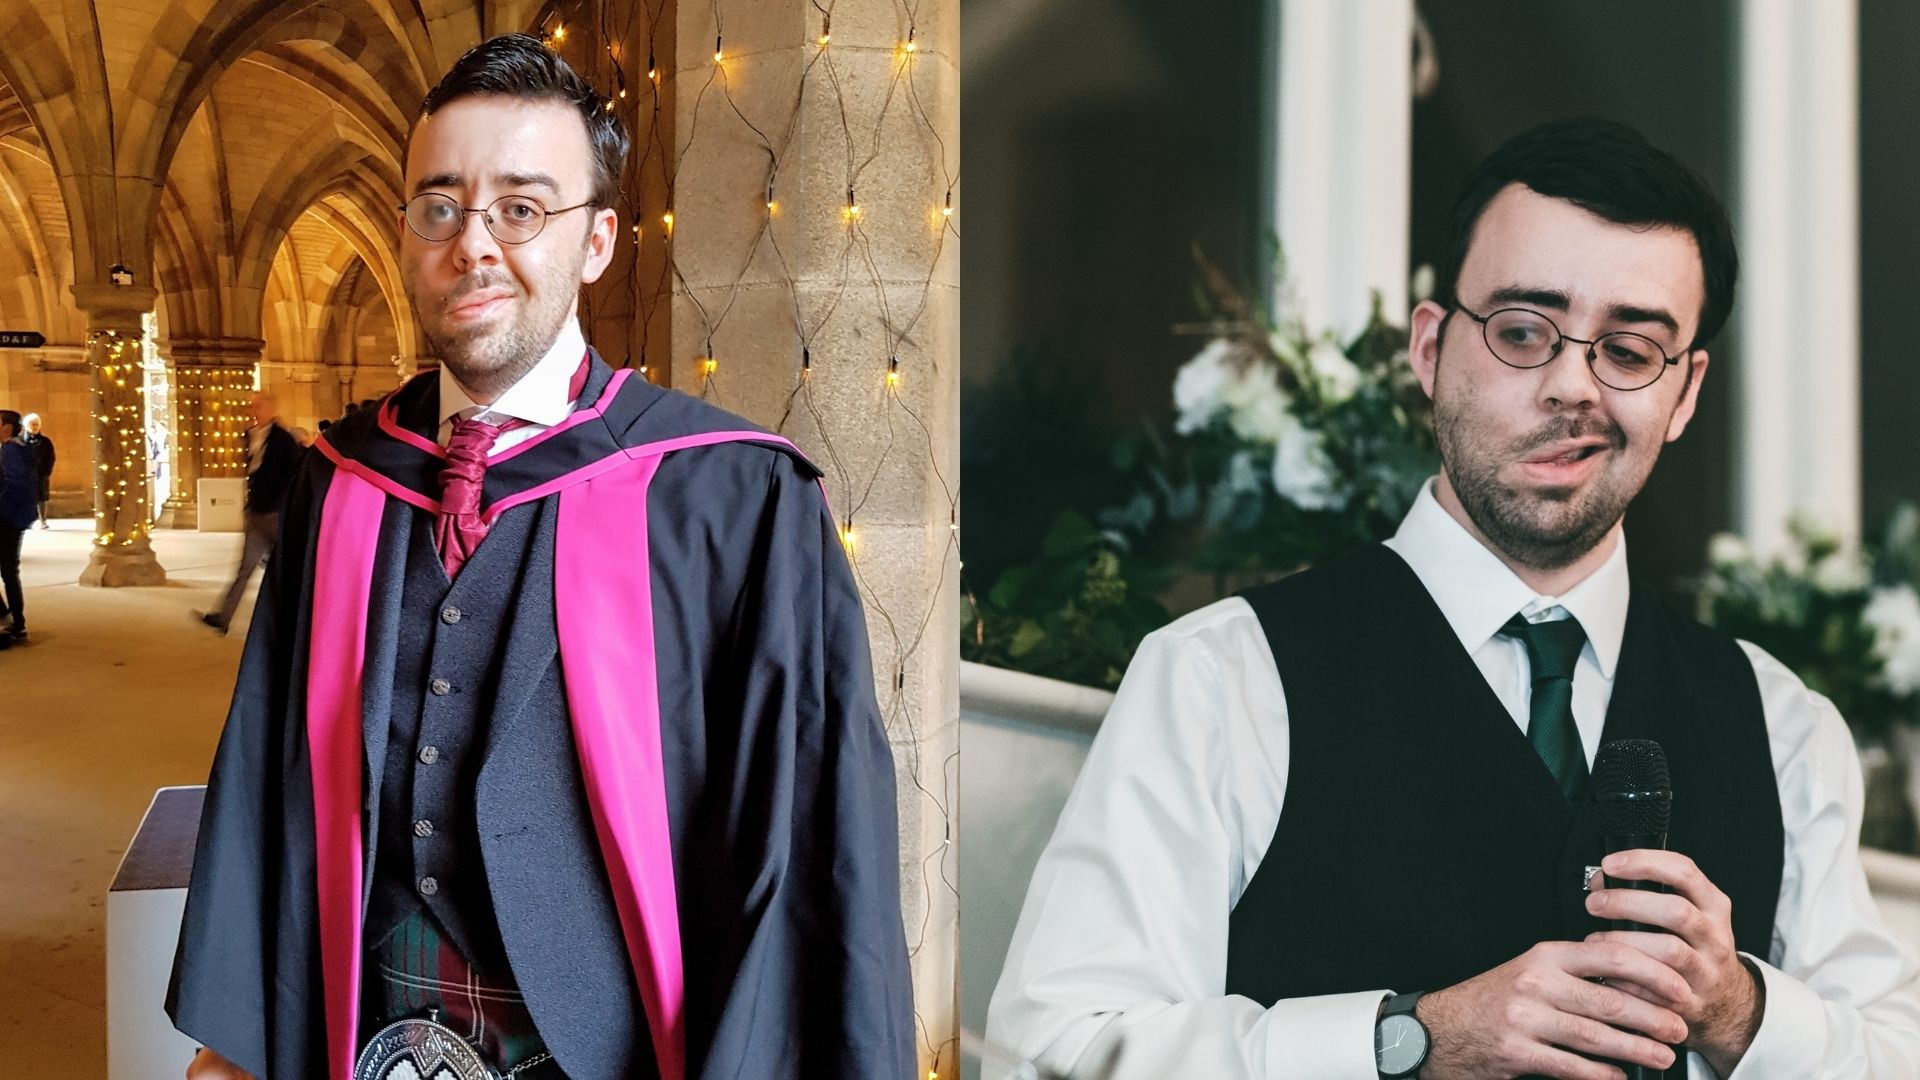 Left: Kevin, a man, 30s, in graduation robes with purple trimmings. He's also wearing glasses, a purple tie, a waistcoat, and a kilt. Behind him are ornate stone arches and columns, covered in fairy lights. Right: Kevin, a man, 30s, at an event. He's wearing a dark waistcoat, glasses, a white shirt, a green tie, and holding a microphone. Behind him are bouquets of flowers sitting on a window sill.